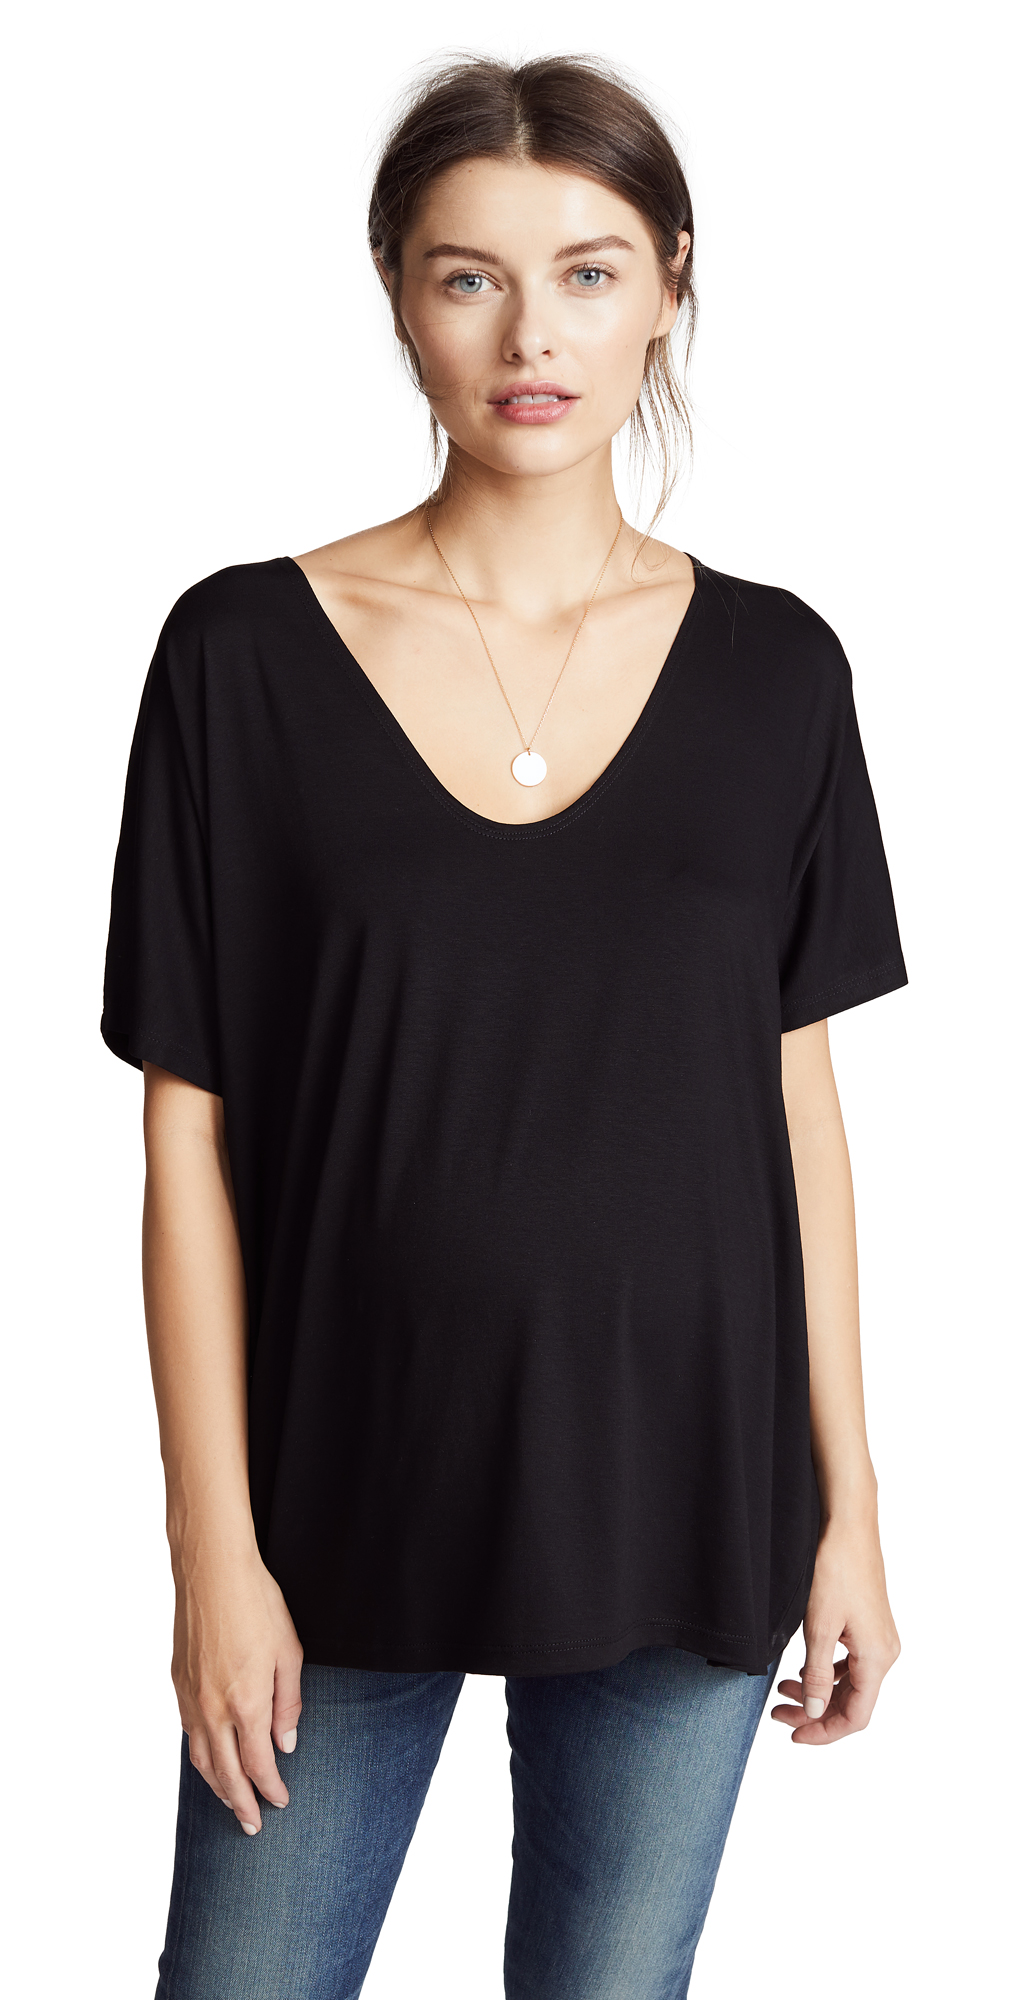 The Perfect V Tee